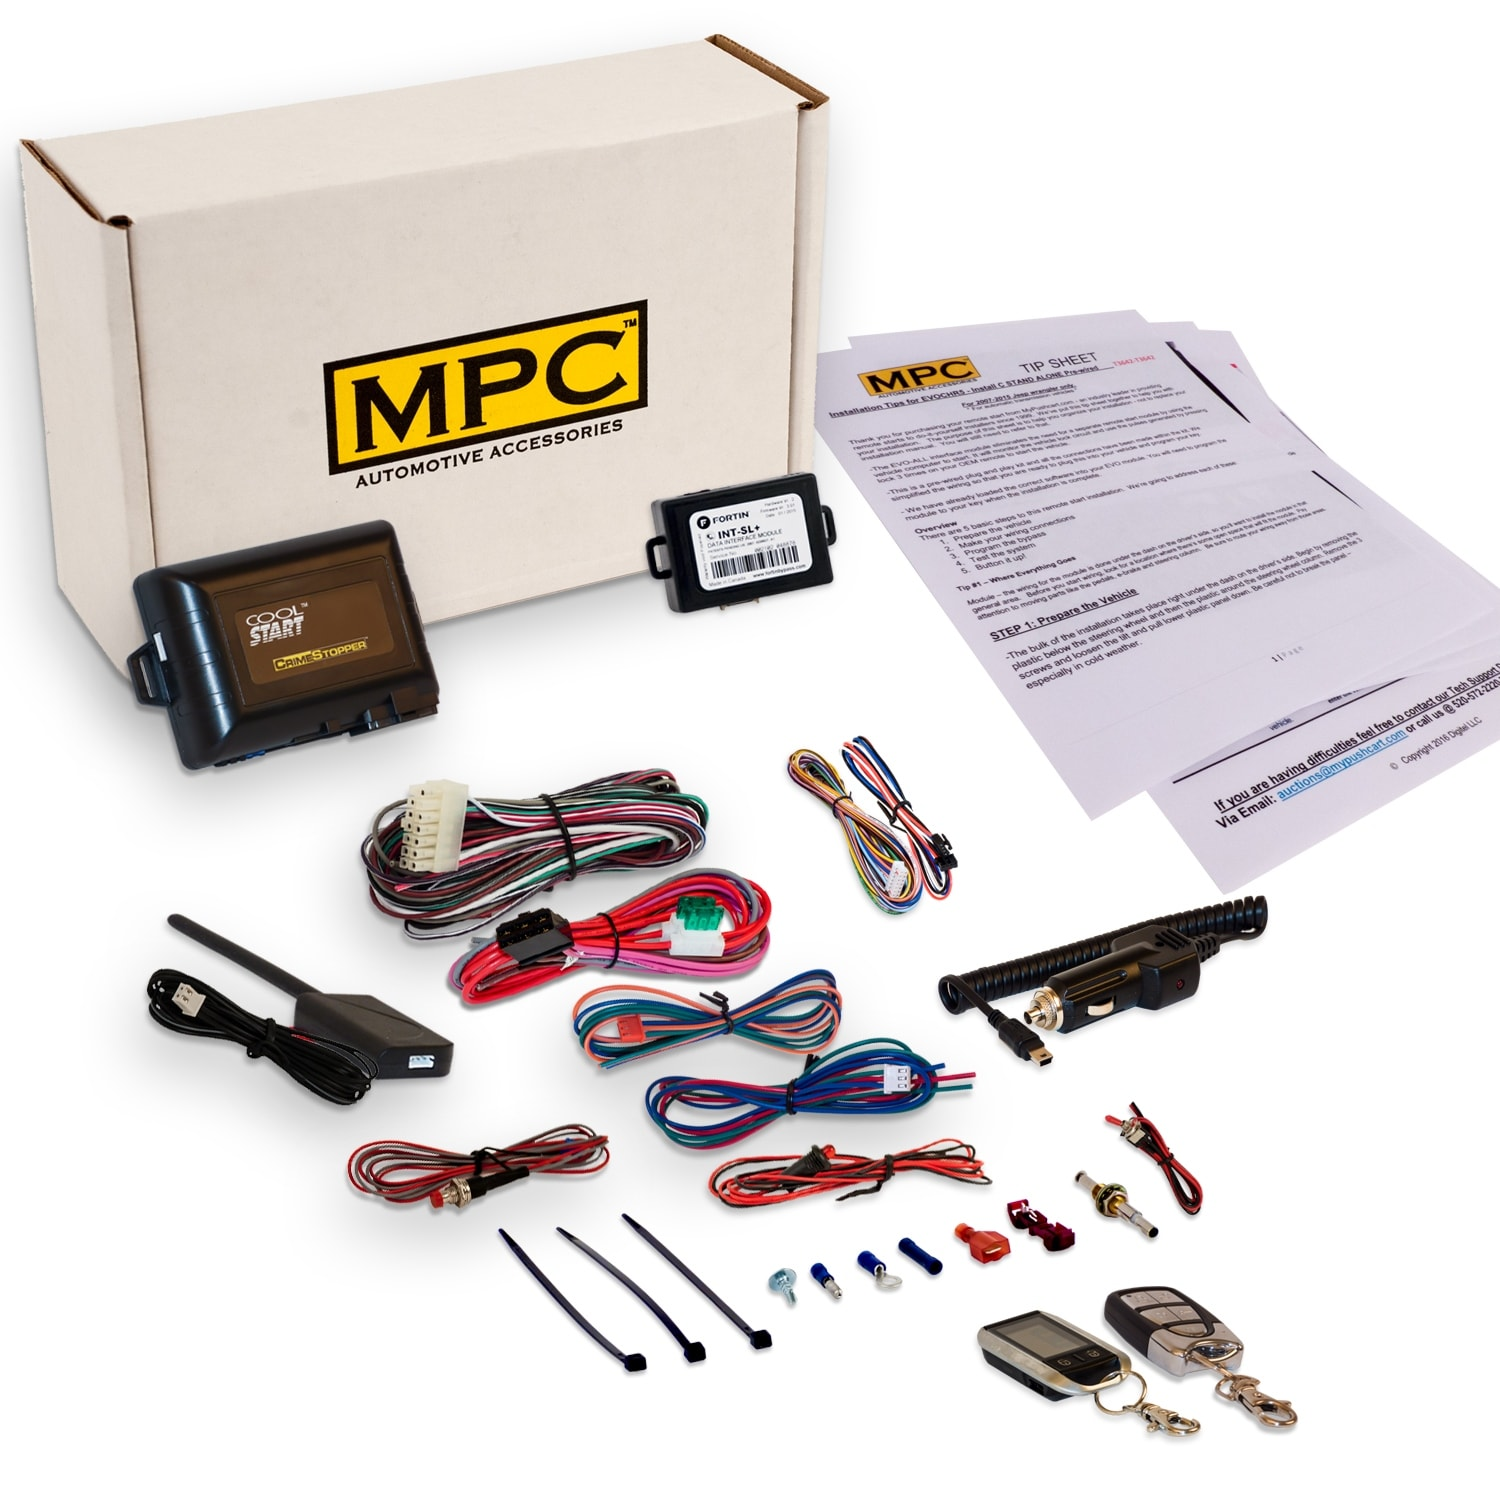 Shop 2-Way LCD Keyless Entry Remote Start Kit For 2005-2009 ... on obd2 to obd1 distributor wiring diagram, obd2 pinout diagram, obd 2 connector diagram, obd2 port wiring diagram, multi pin connectors wiring diagram, obd2 to 15 pin connector, obd2 integra engine wiring diagram,